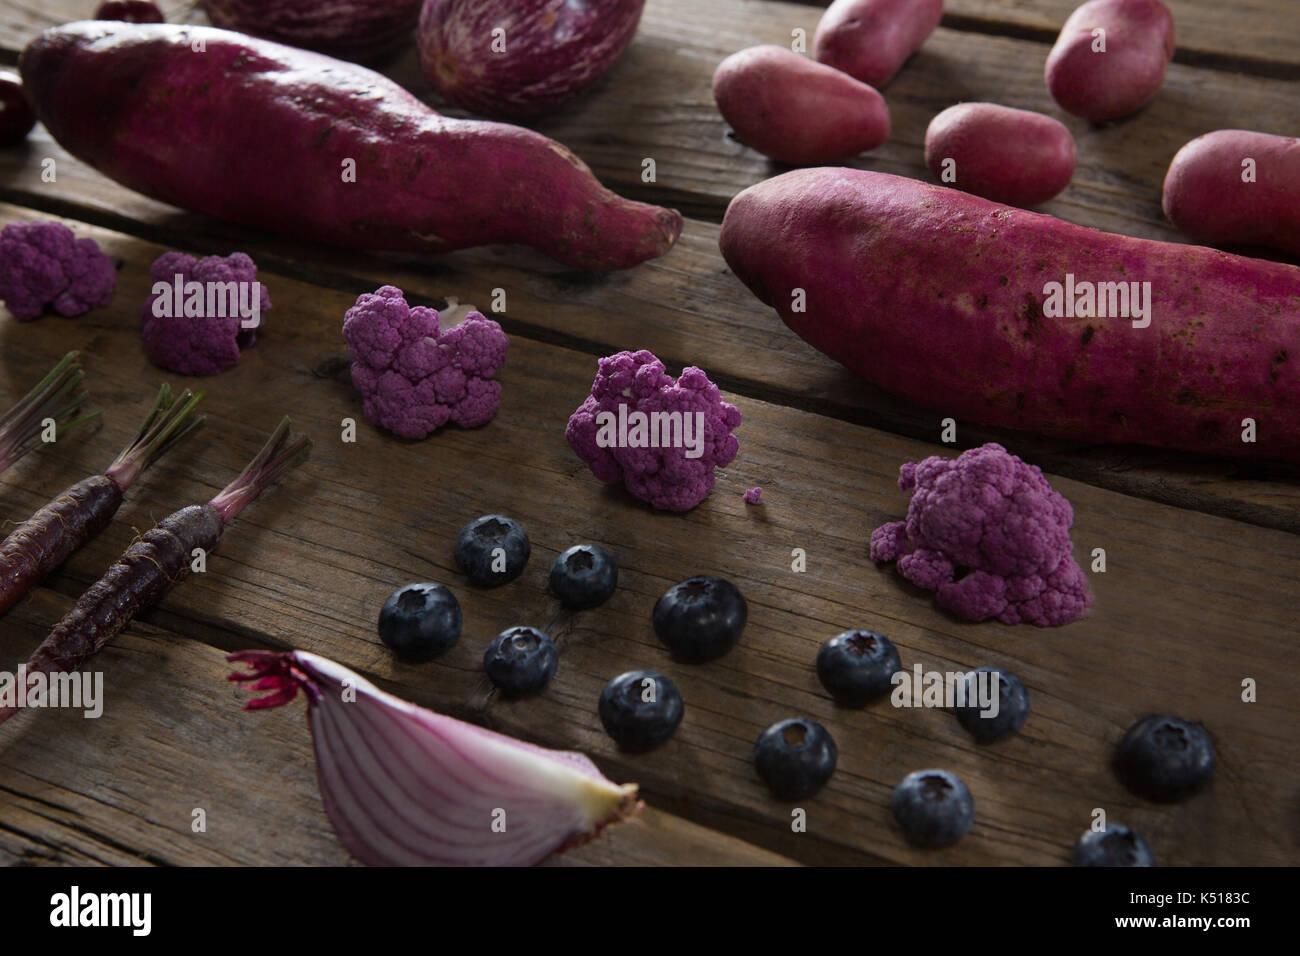 Close-up of various vegetable arranged on wooden table - Stock Image